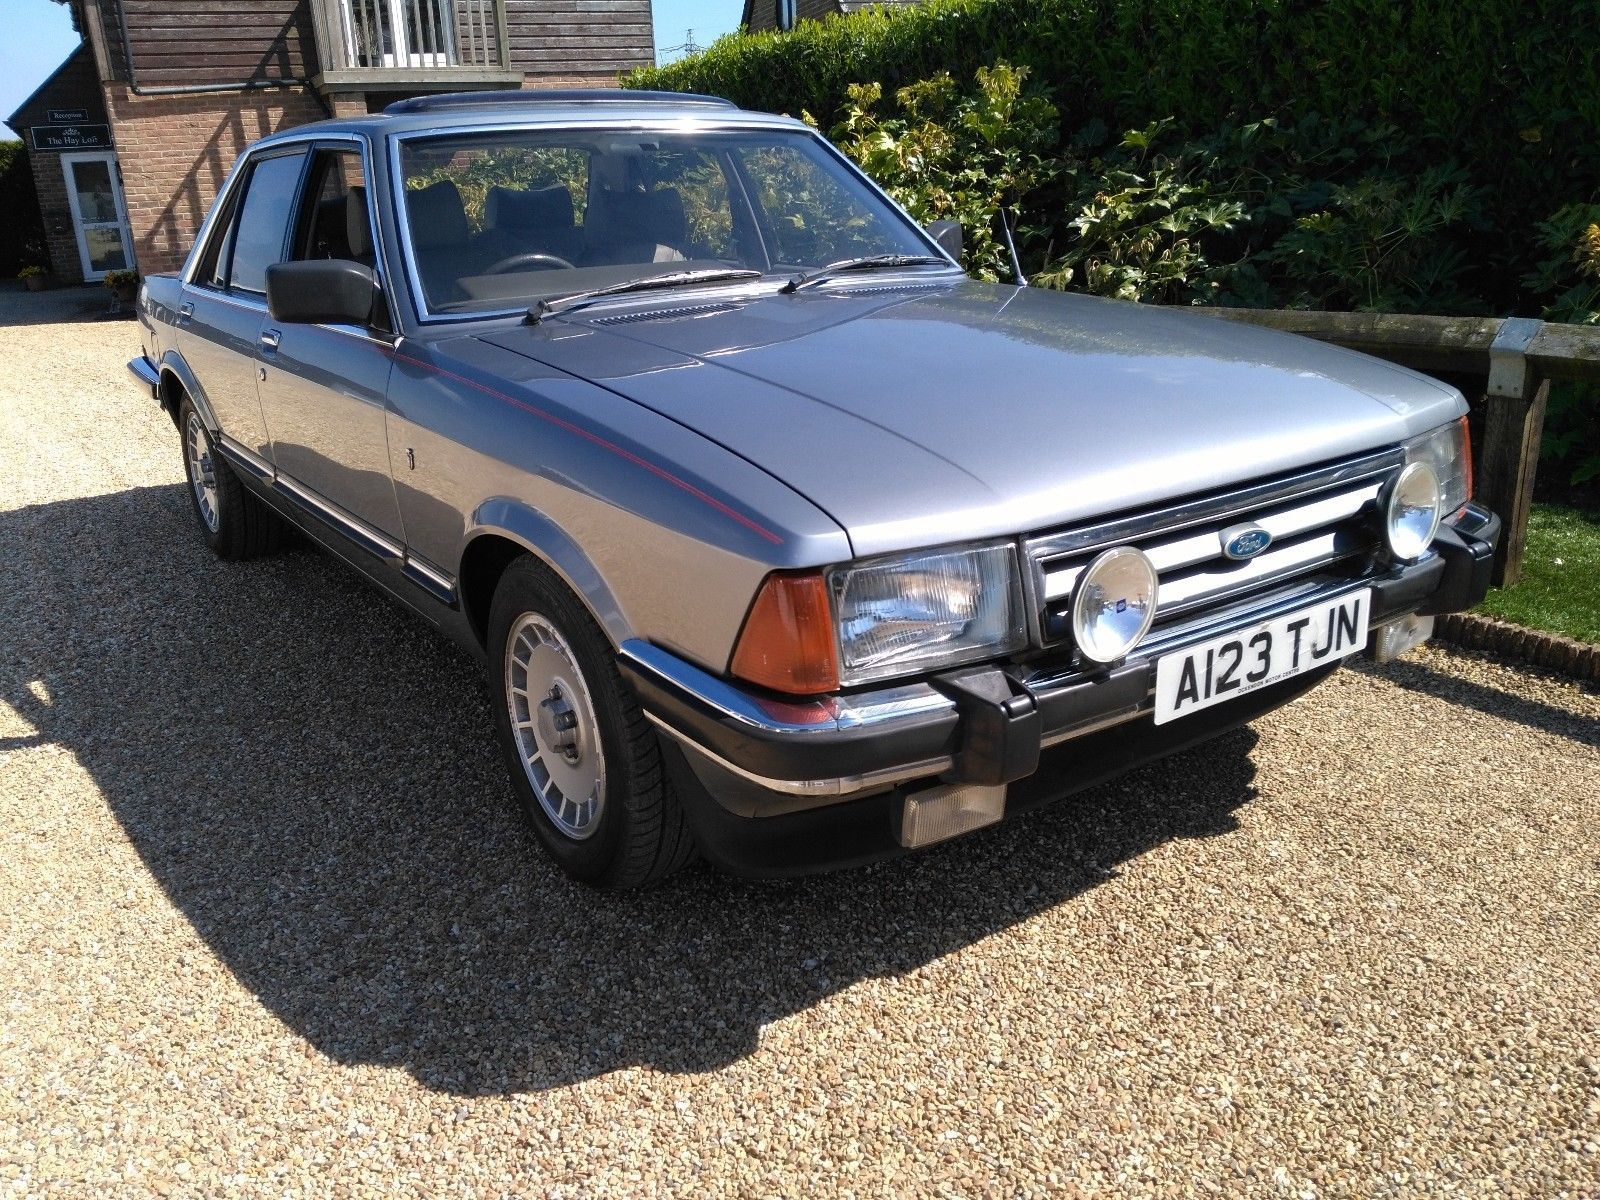 Ebay Ford Granada 2 8i Ghia X Auto 1984 Leather Mot Dry Stored No Reserve 1980s Cars Ford Granada Ford Classic Cars Ford Motor